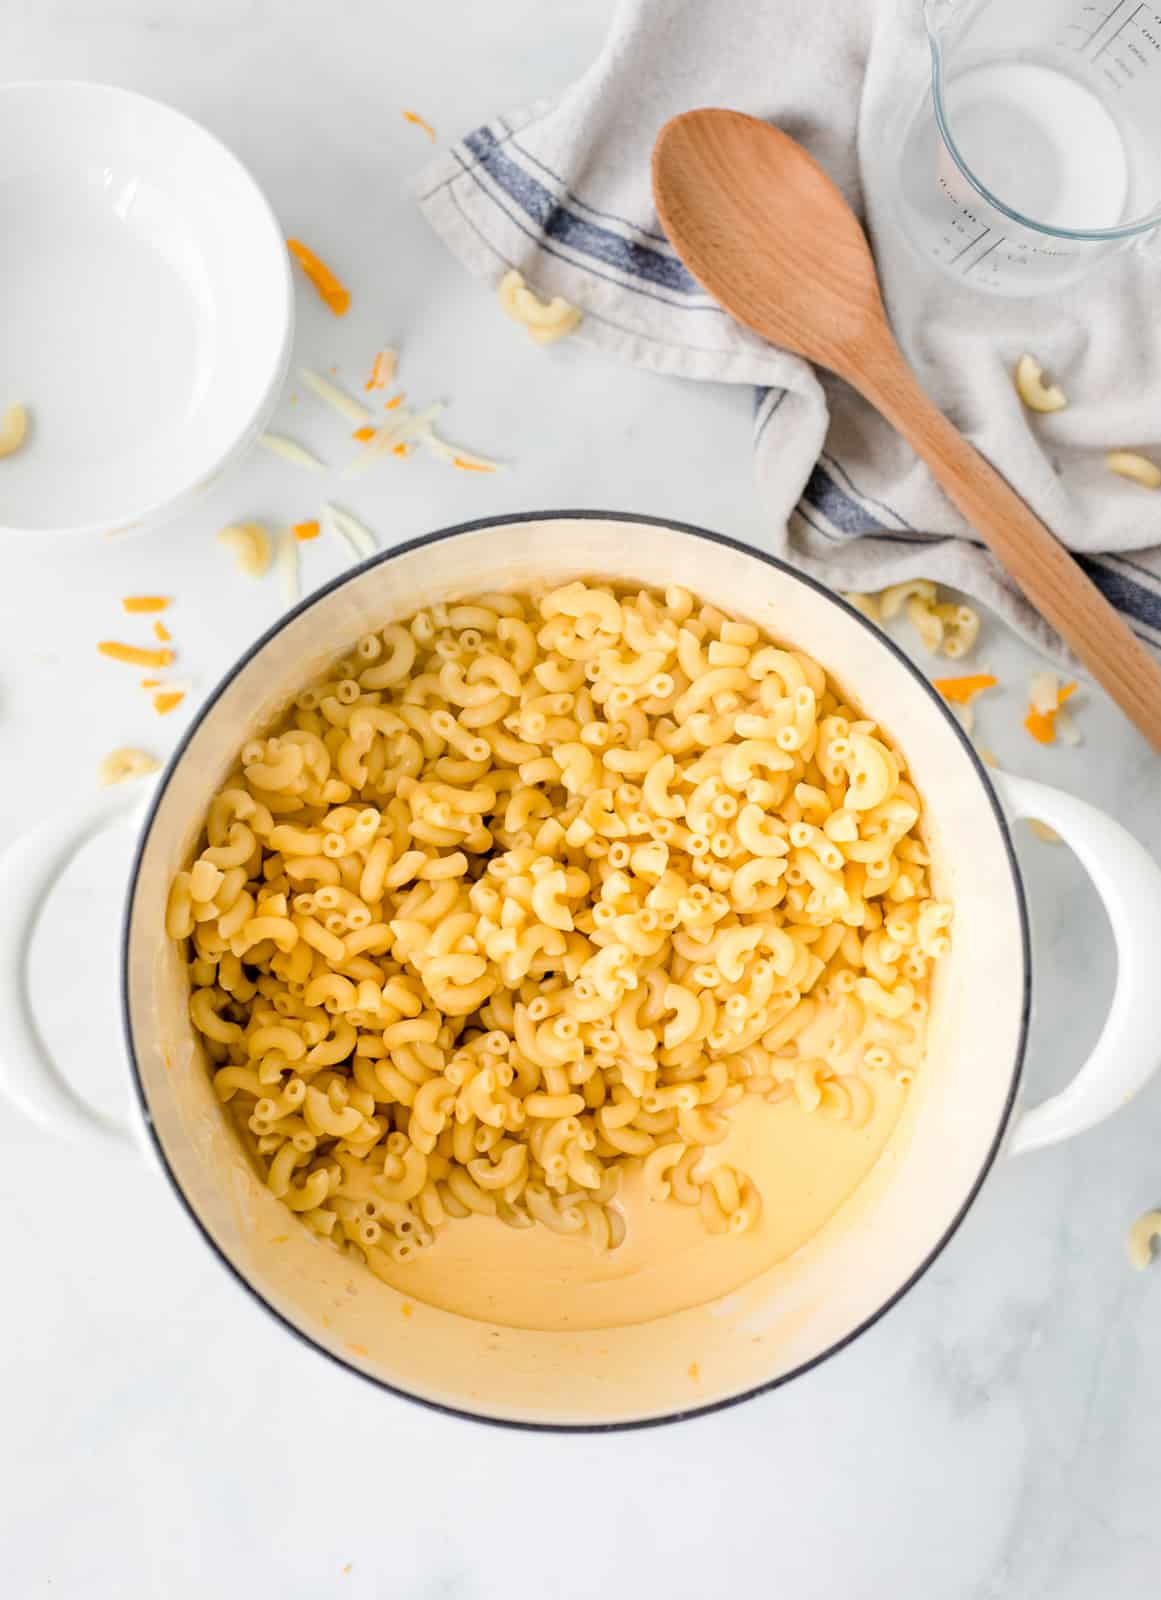 Pasta added to the cheese sauce in pan.